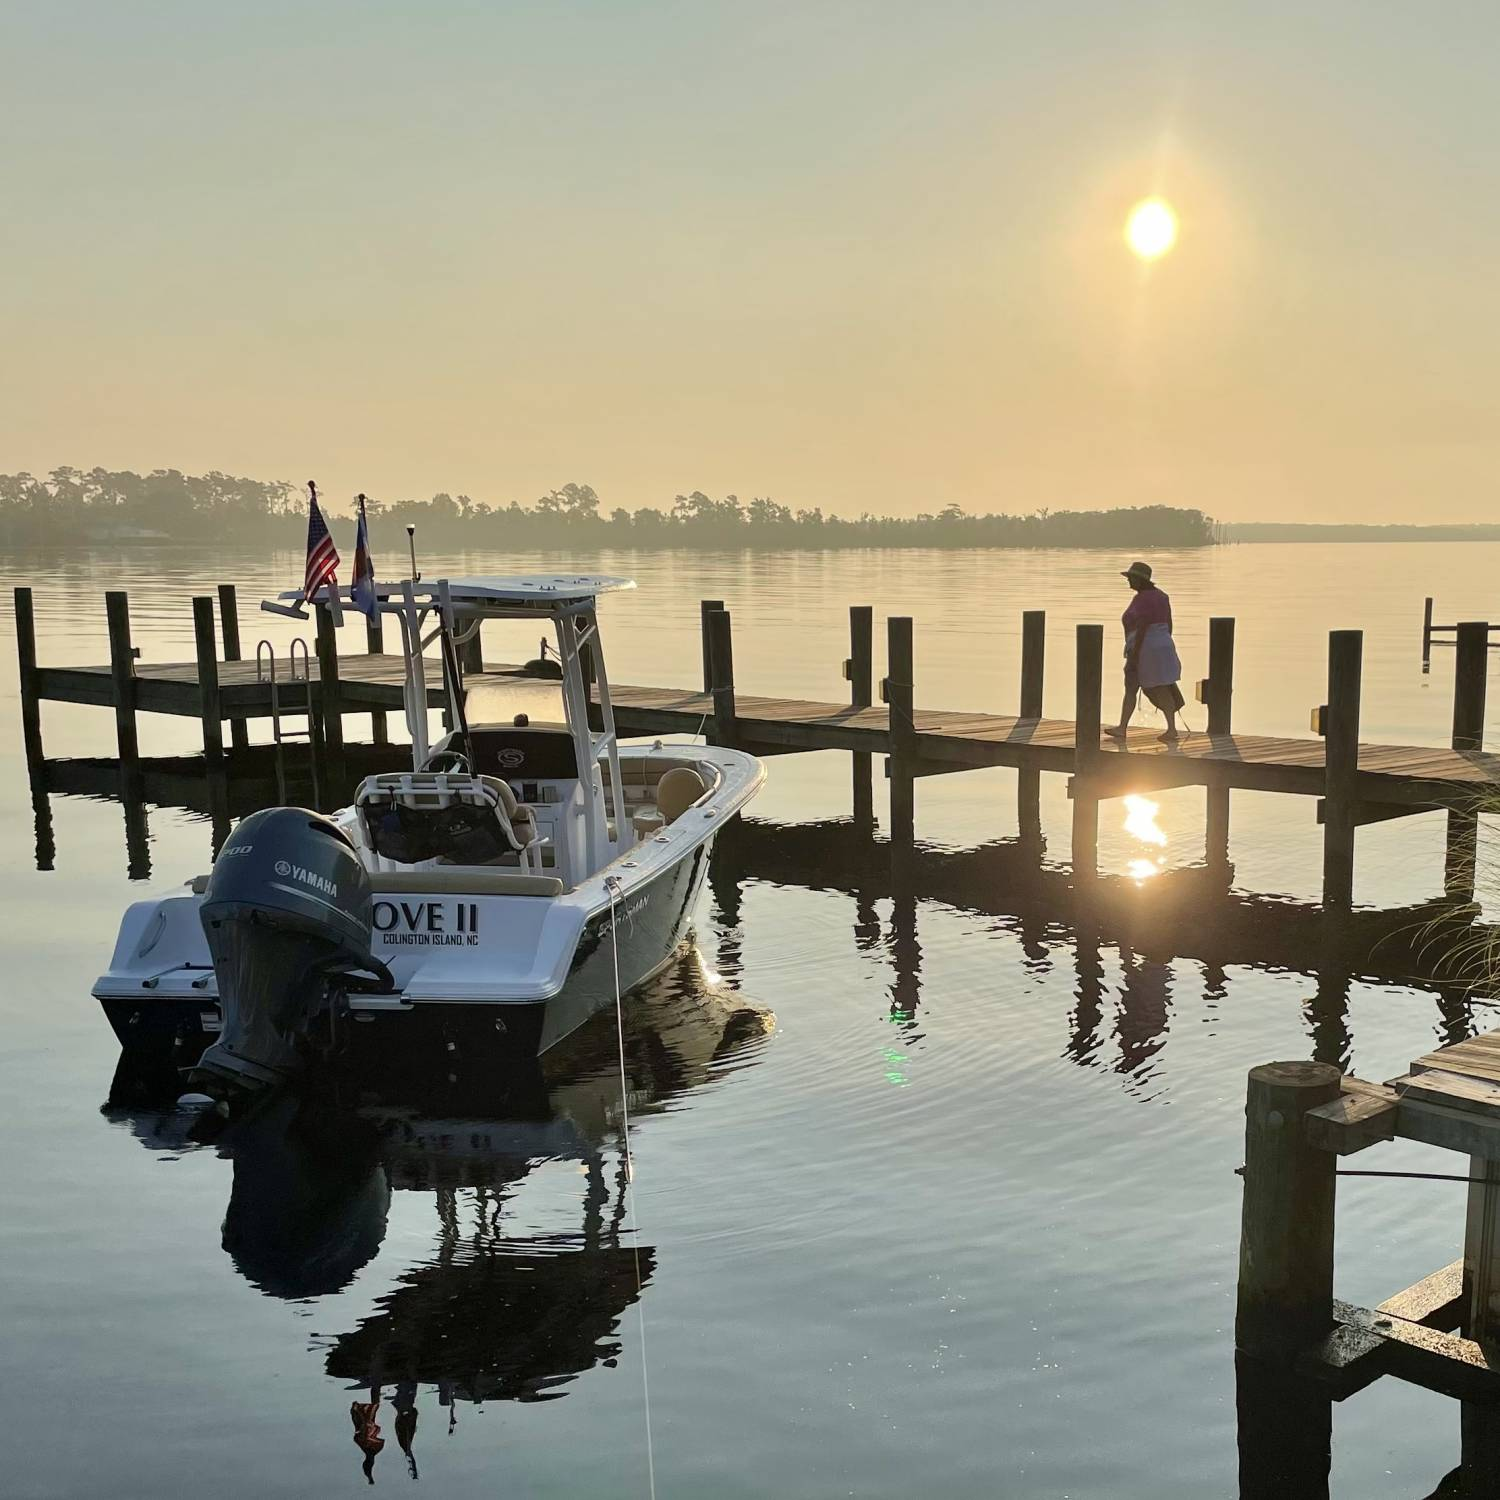 Starting our cruise to Norfolk, Virginia. Our mighty 211 took us on a magical journey to celebr...